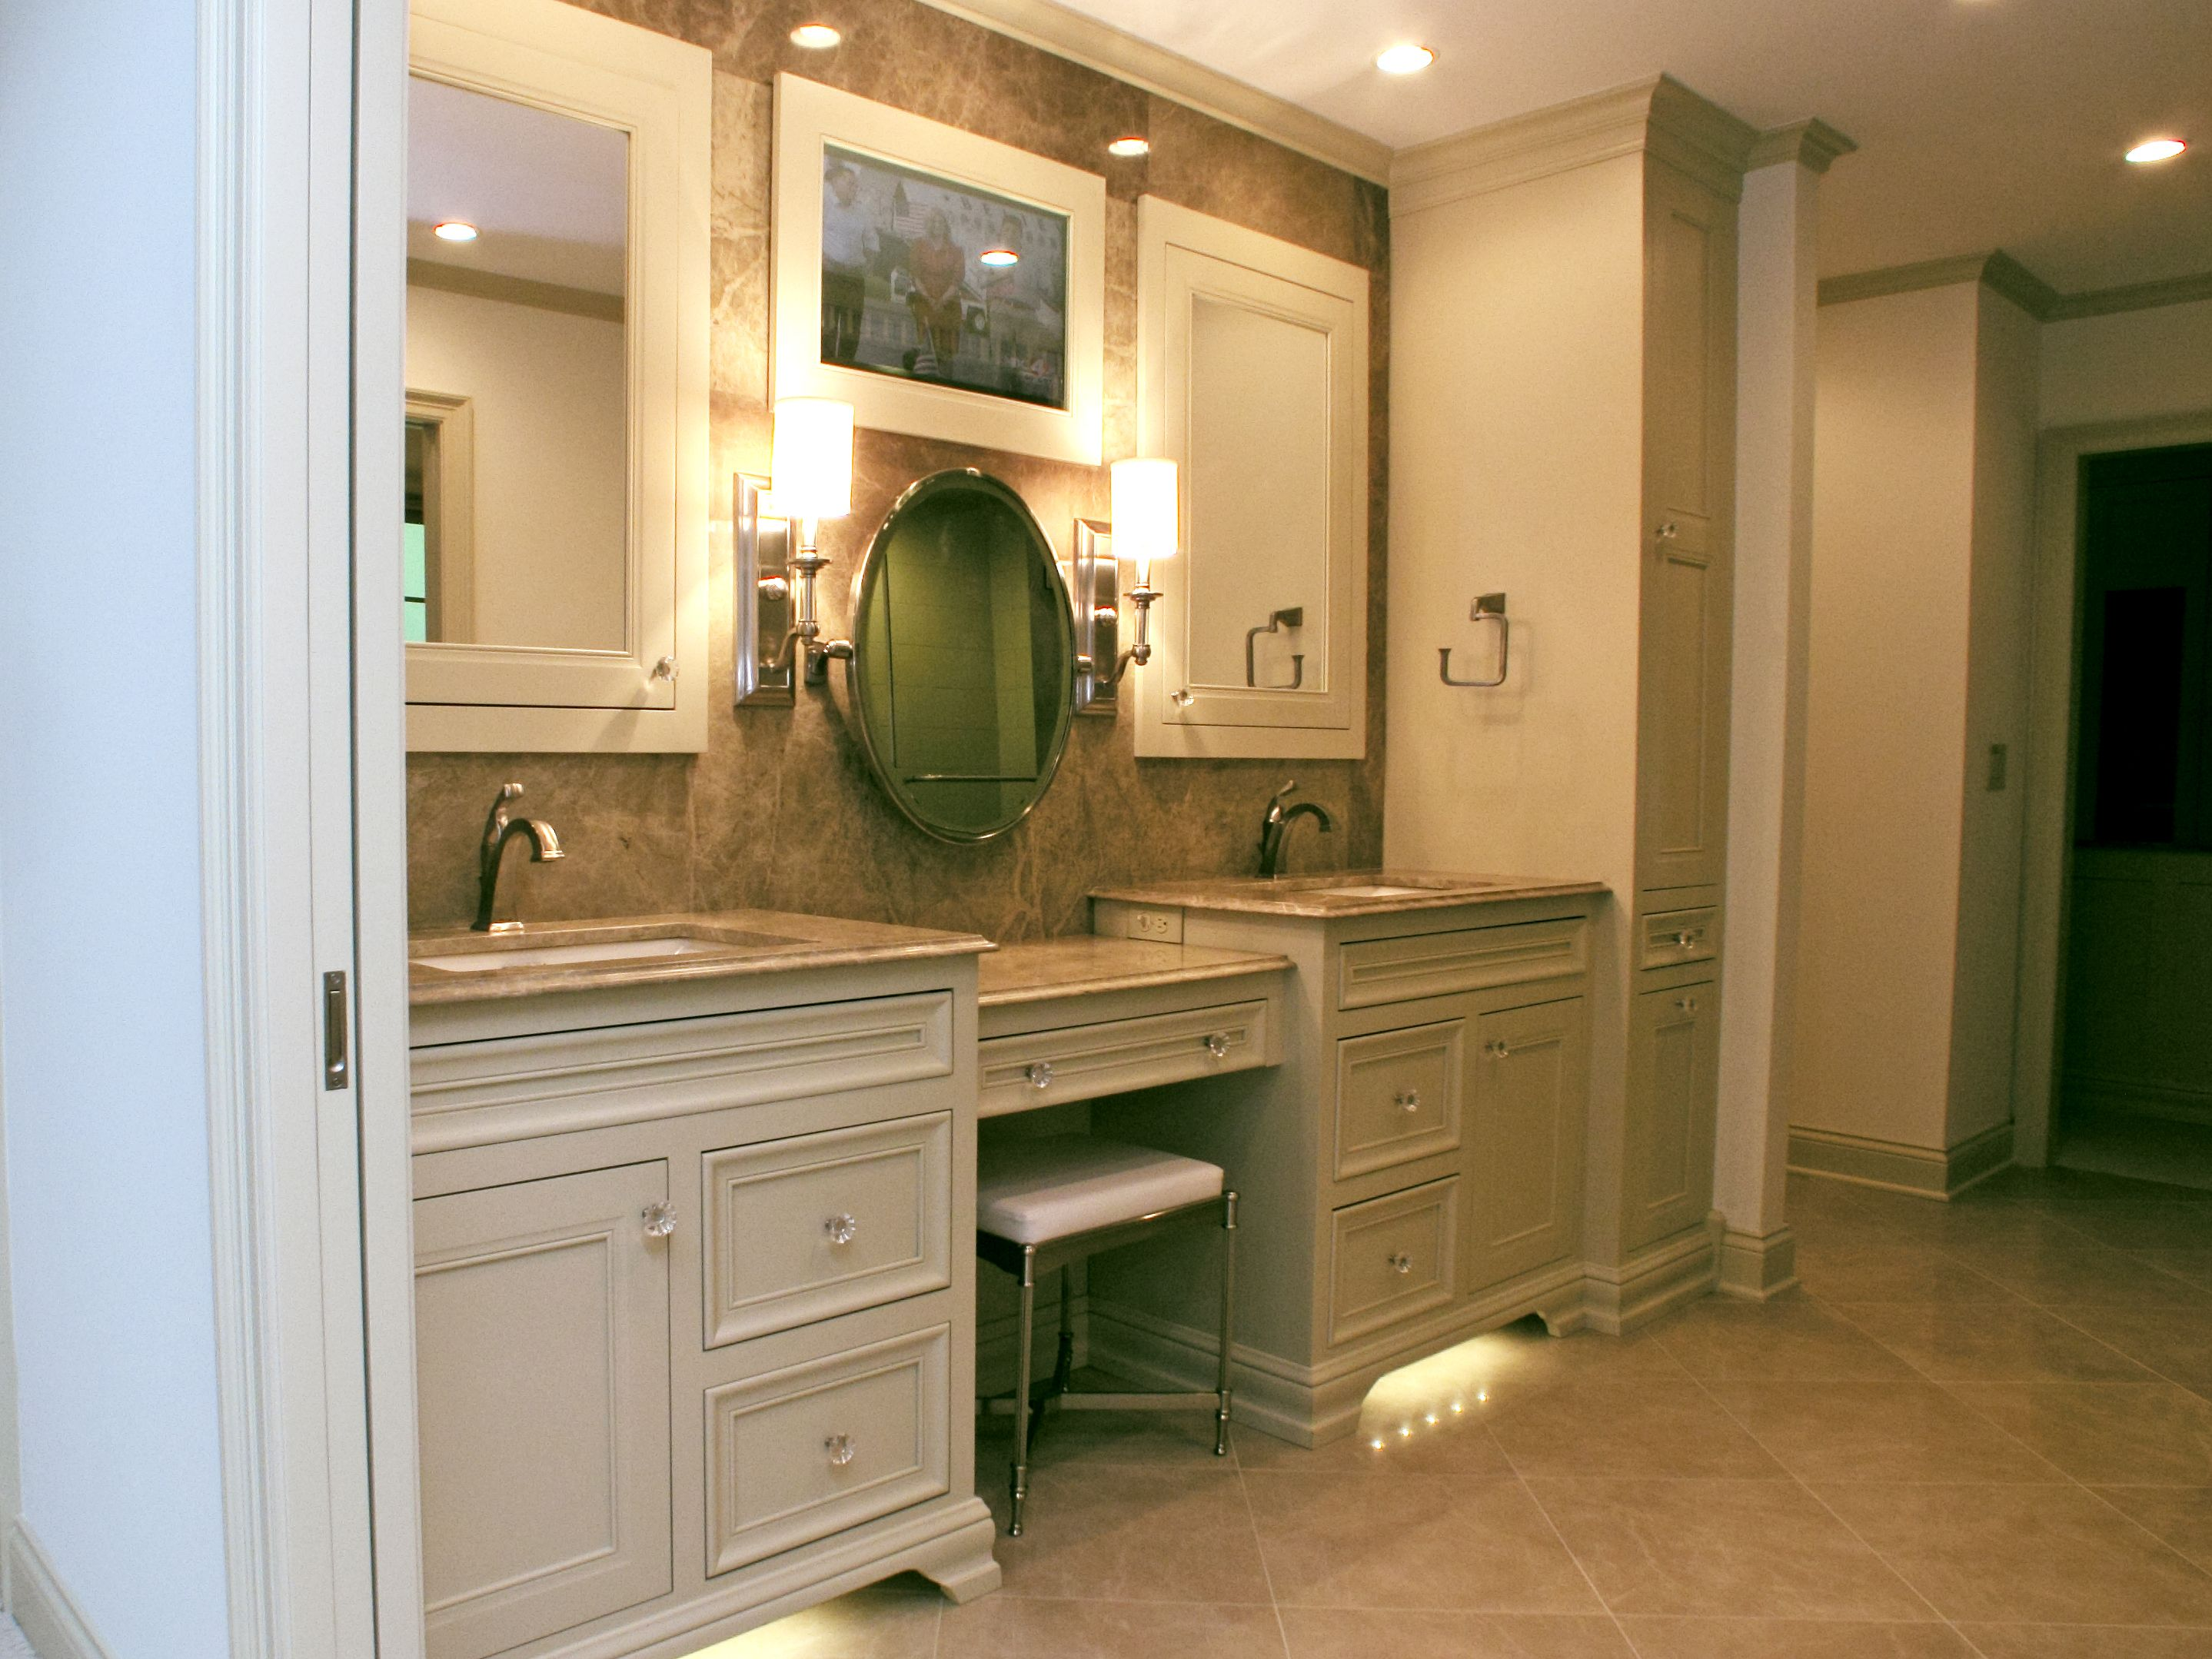 Bathroom Mirrors With Tv Built In Double Vanity Bathroom With Granite Countertops Tile